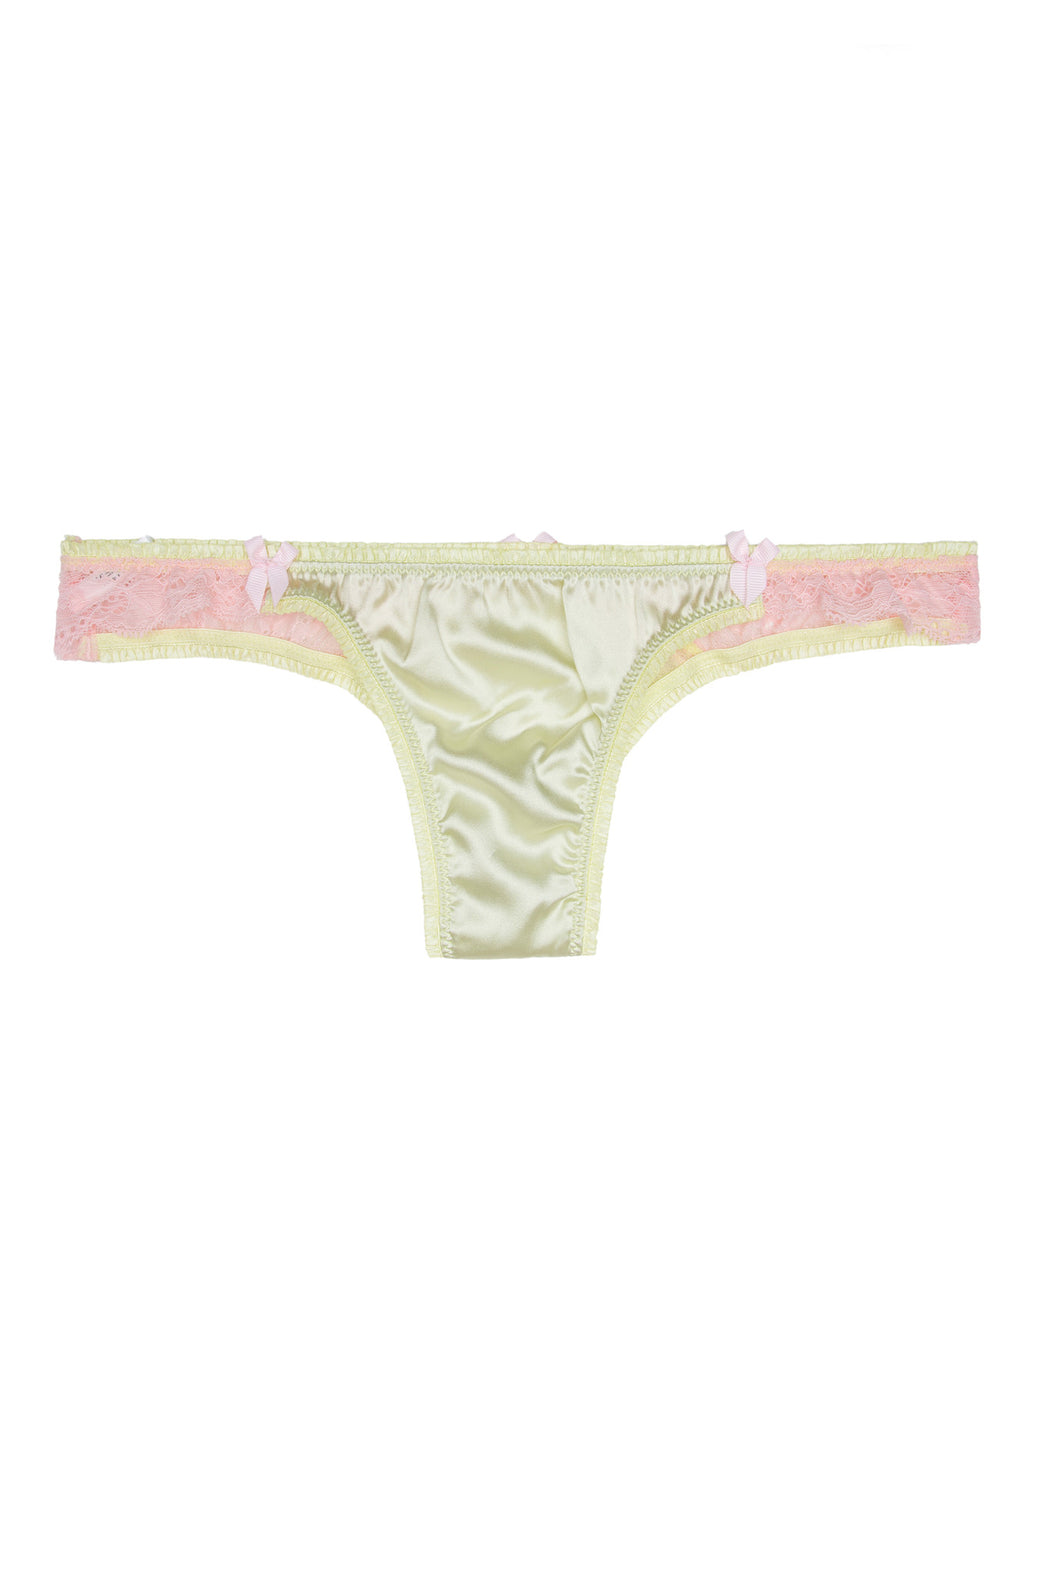 Kiwi Pavlova thong by Mimi Holliday workingirls lingerie